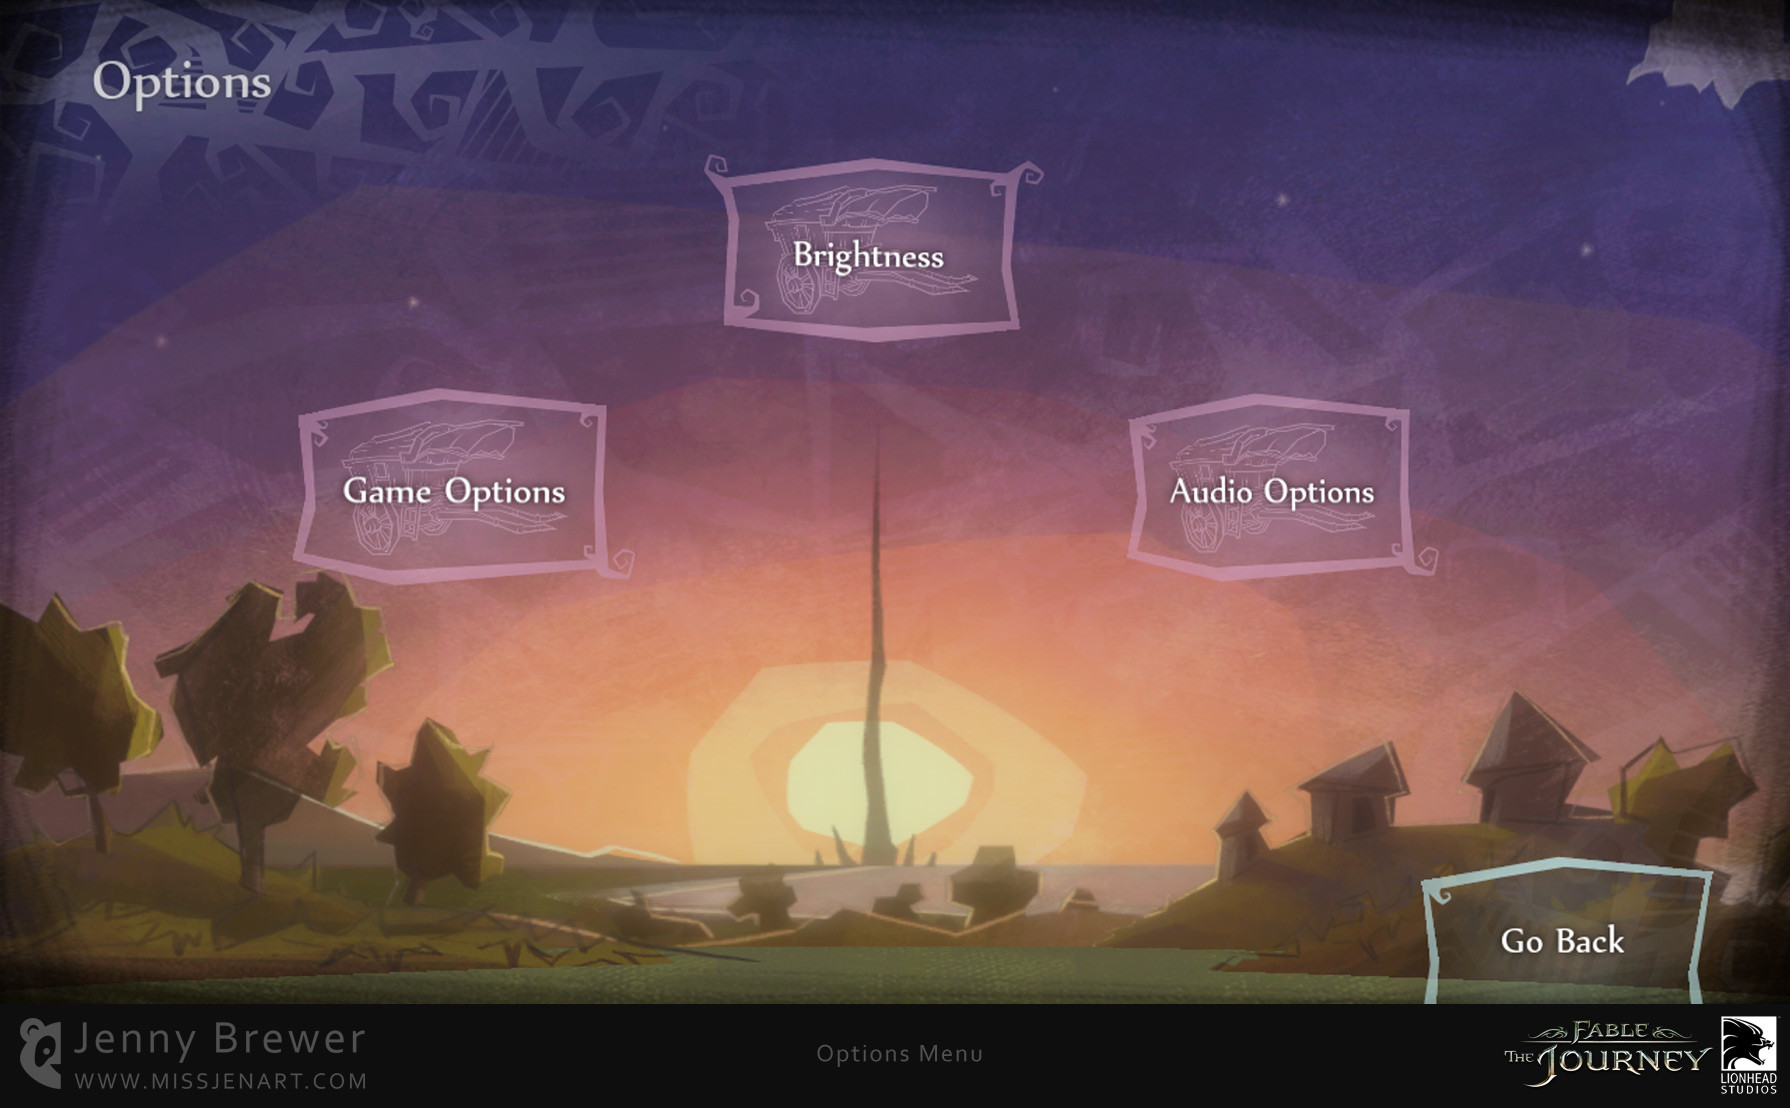 Jenny brewer 001 fablejourney options